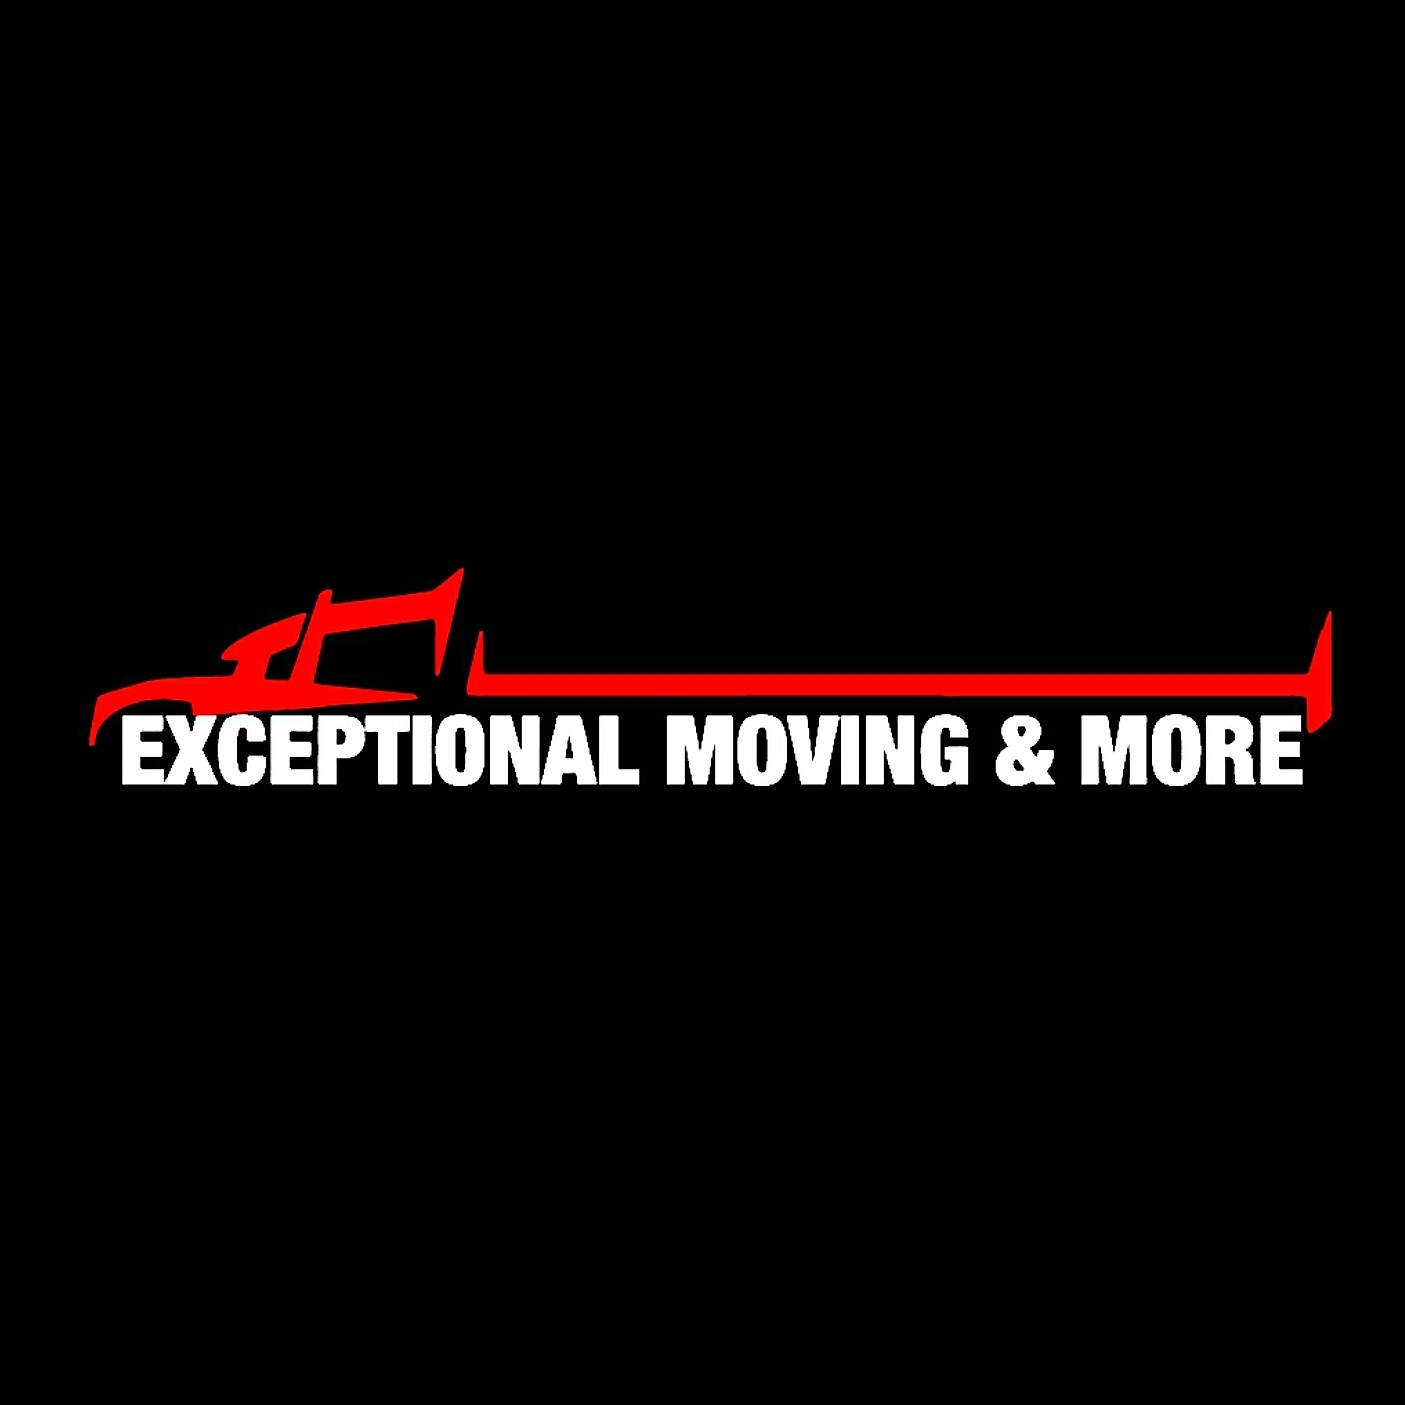 EXCEPTIONAL MOVING & MORE